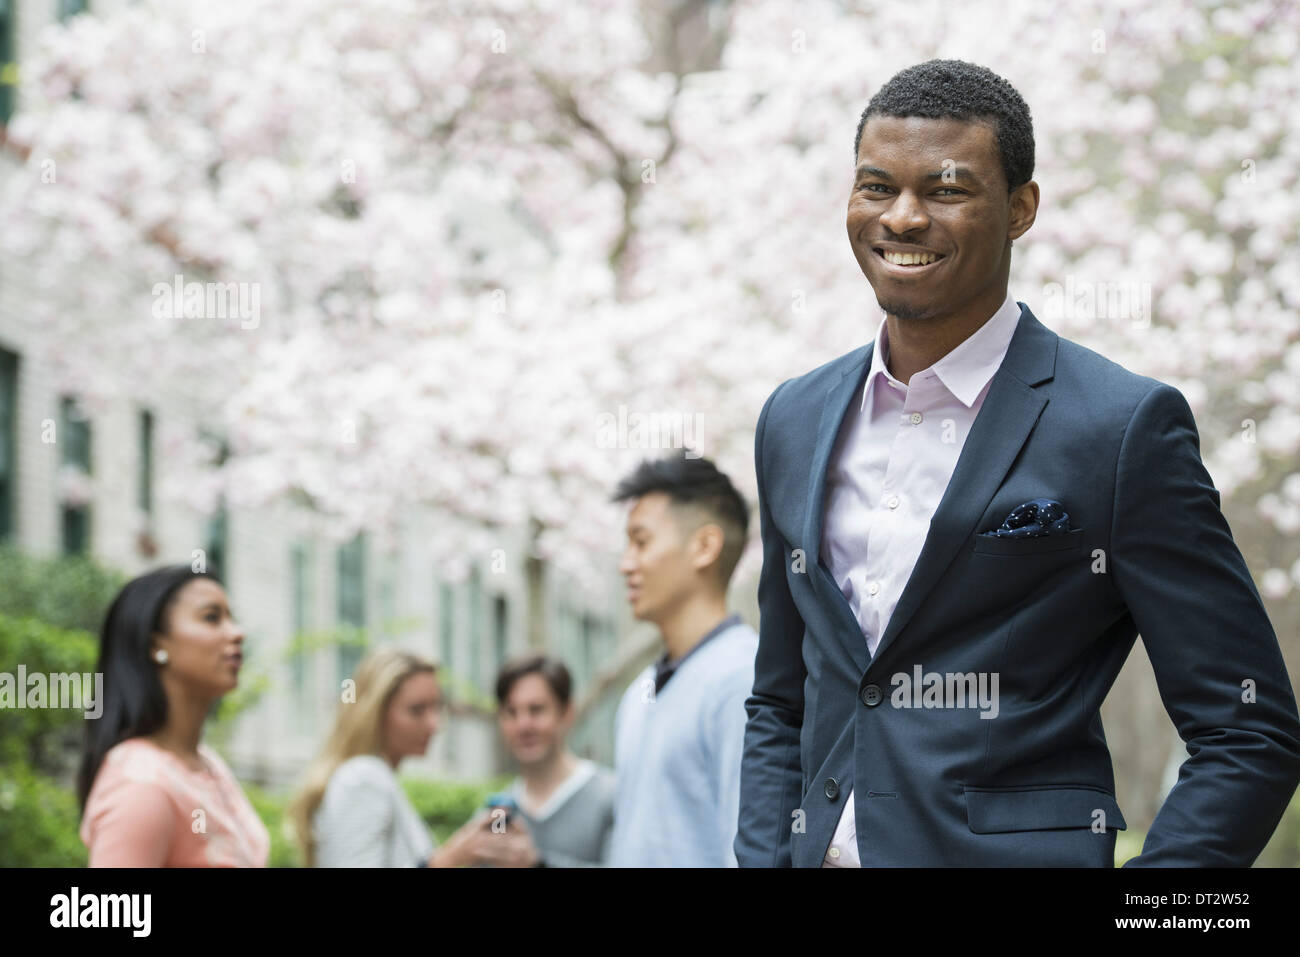 Young people outdoors in a city park A man in a suit smiling Four people in the background Using cell phones - Stock Image